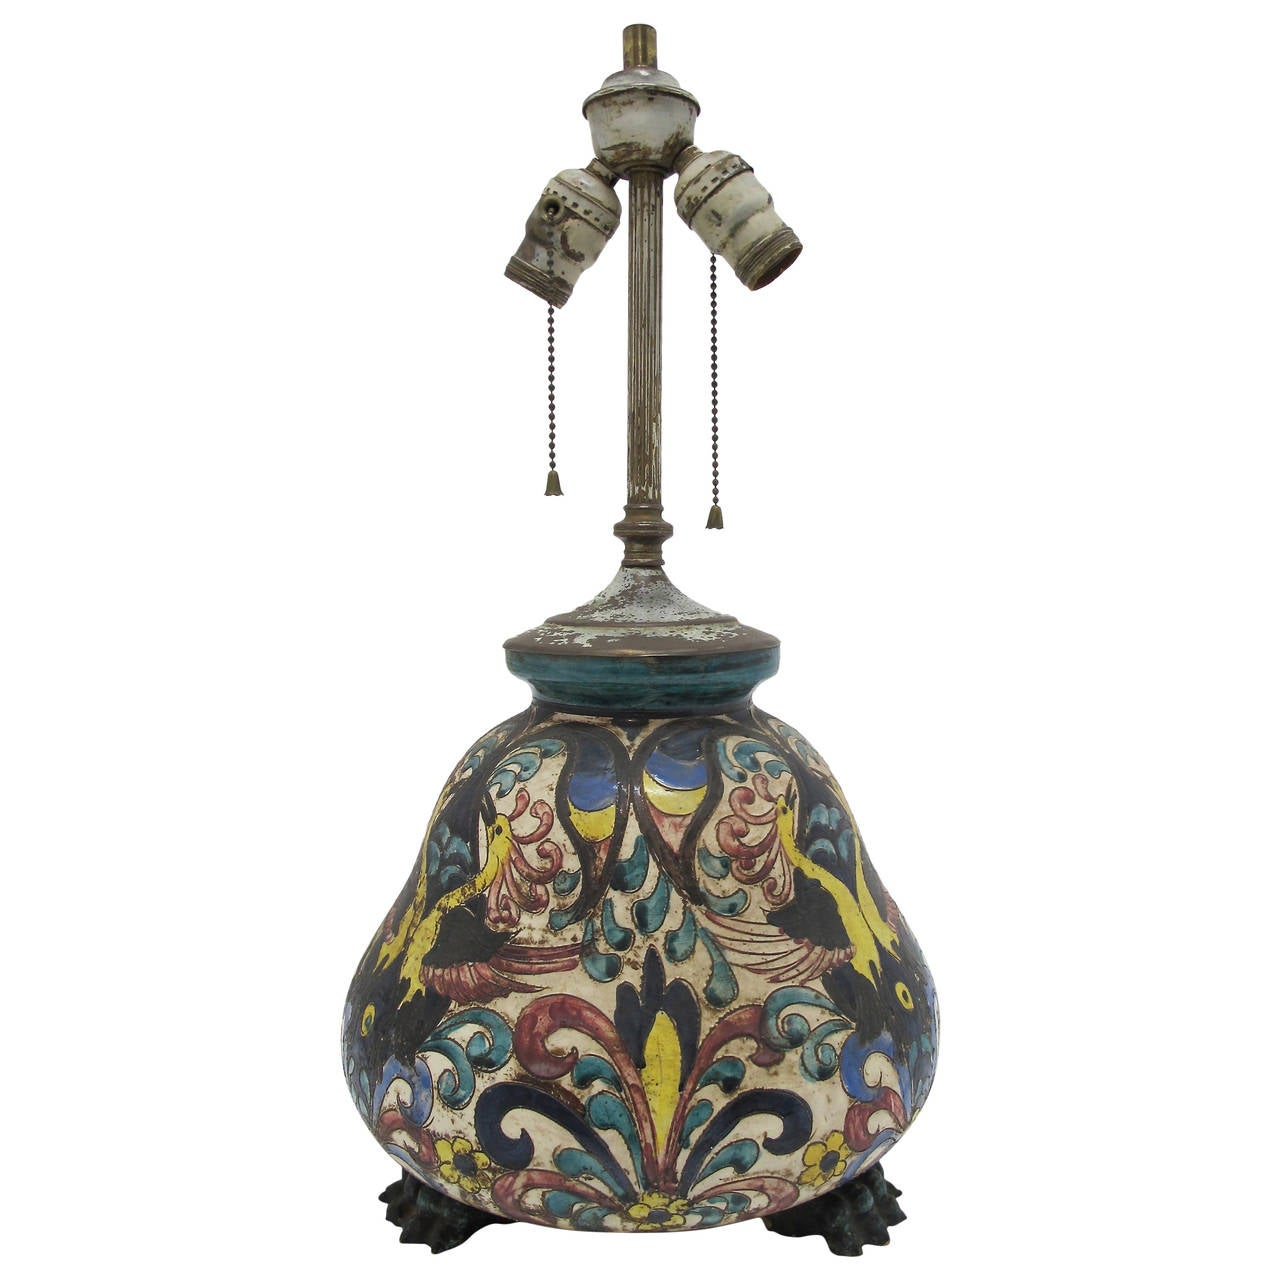 1920s Italian Pottery Lamp At 1stdibs